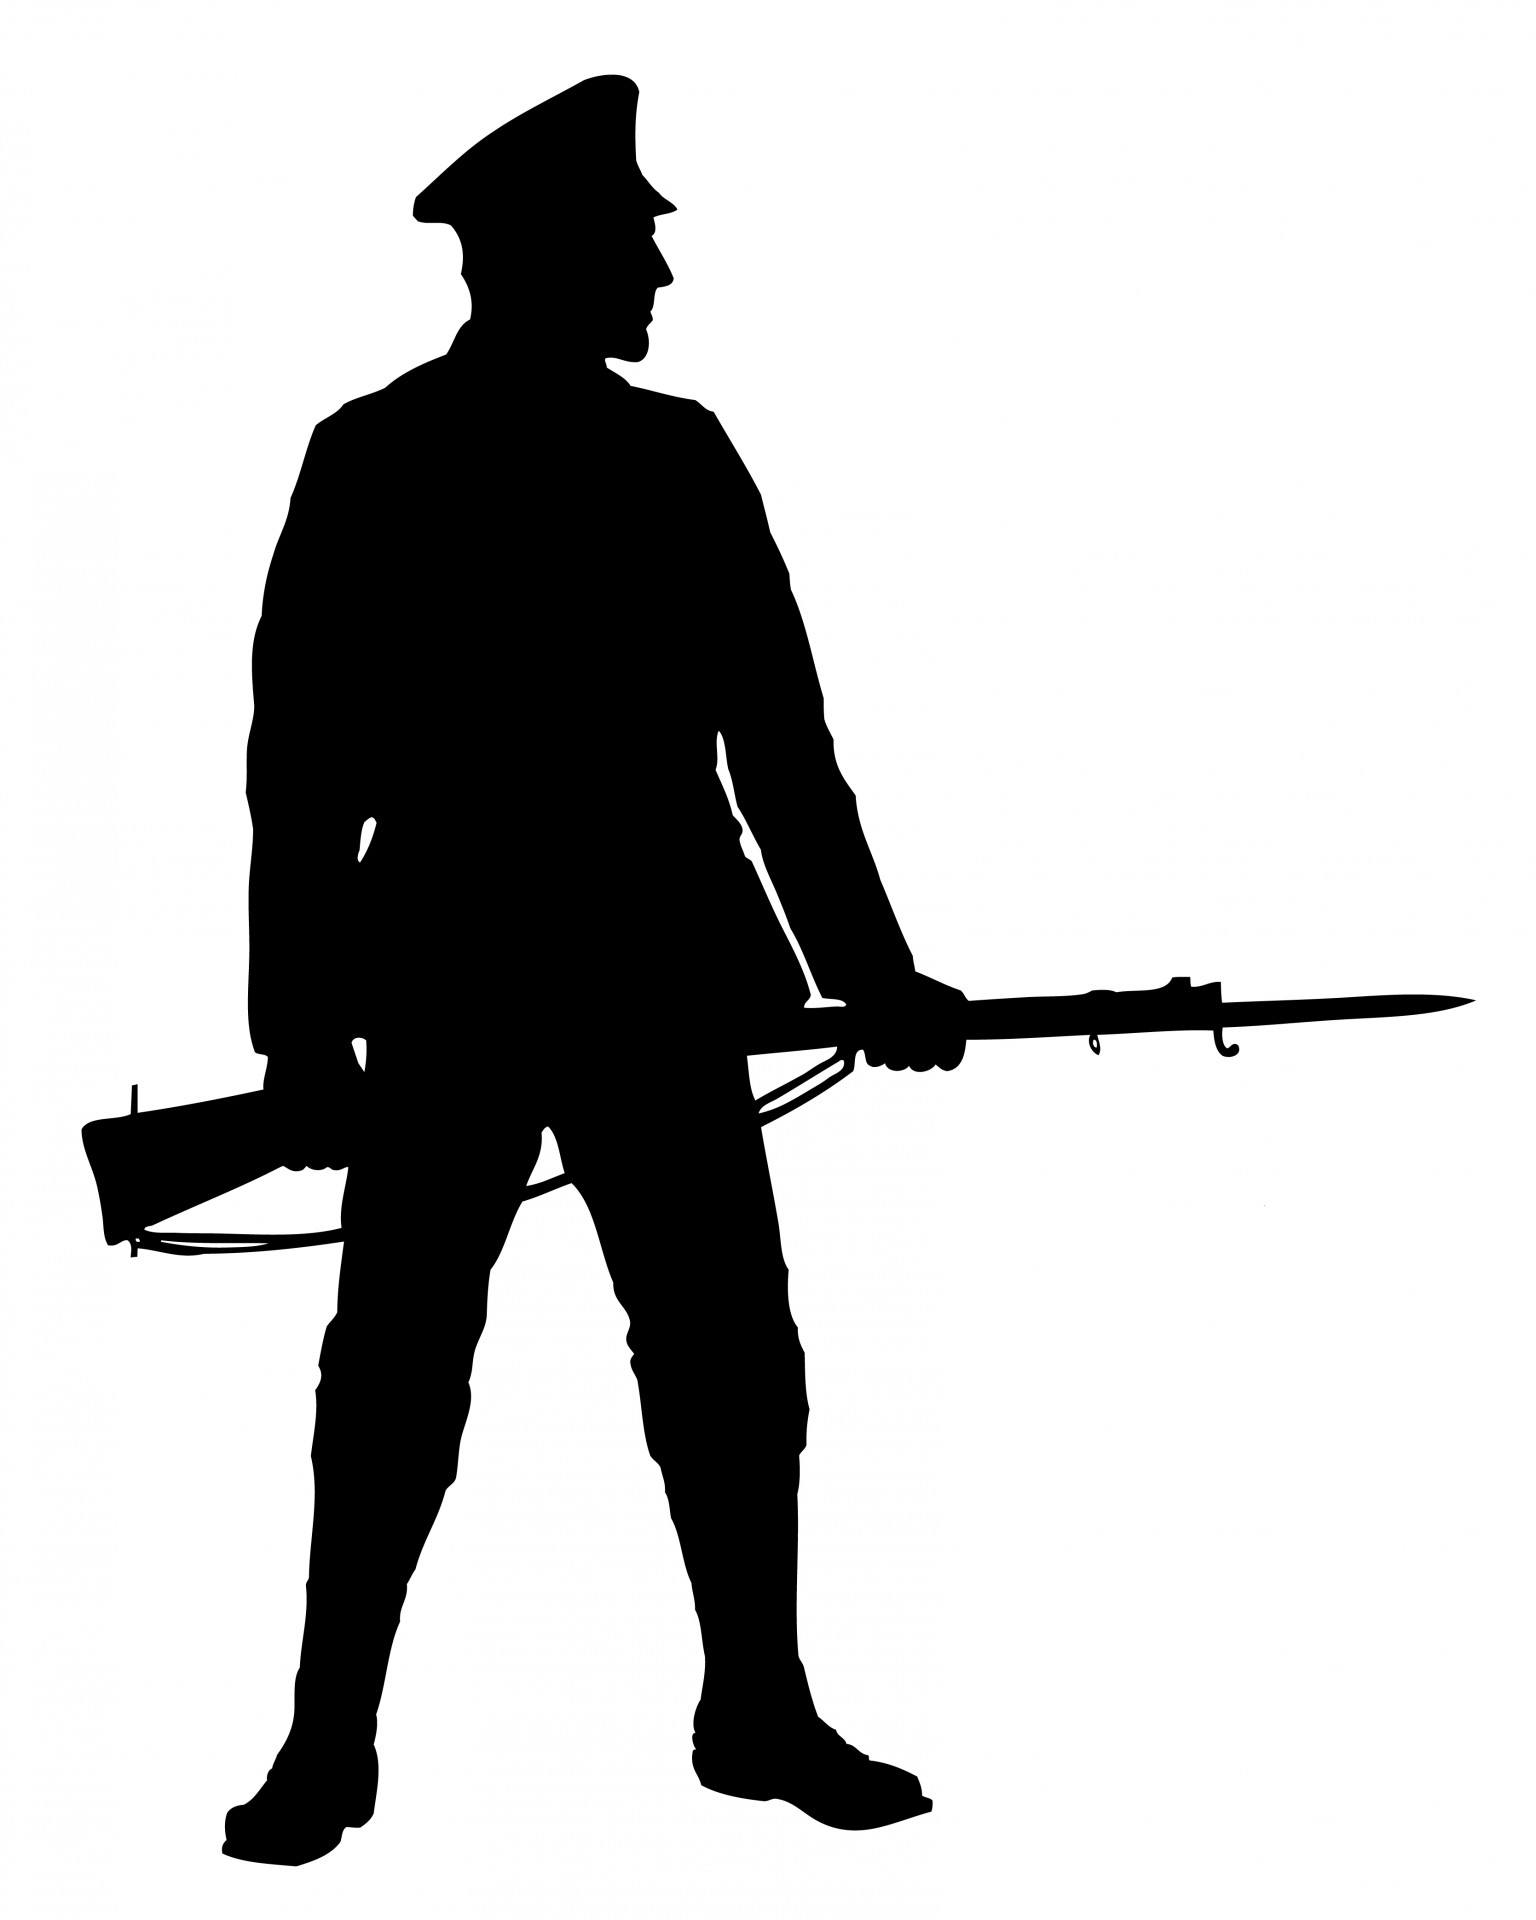 Soldier With Rifle Clipart Free Stock Ph-Soldier With Rifle Clipart Free Stock Photo-13